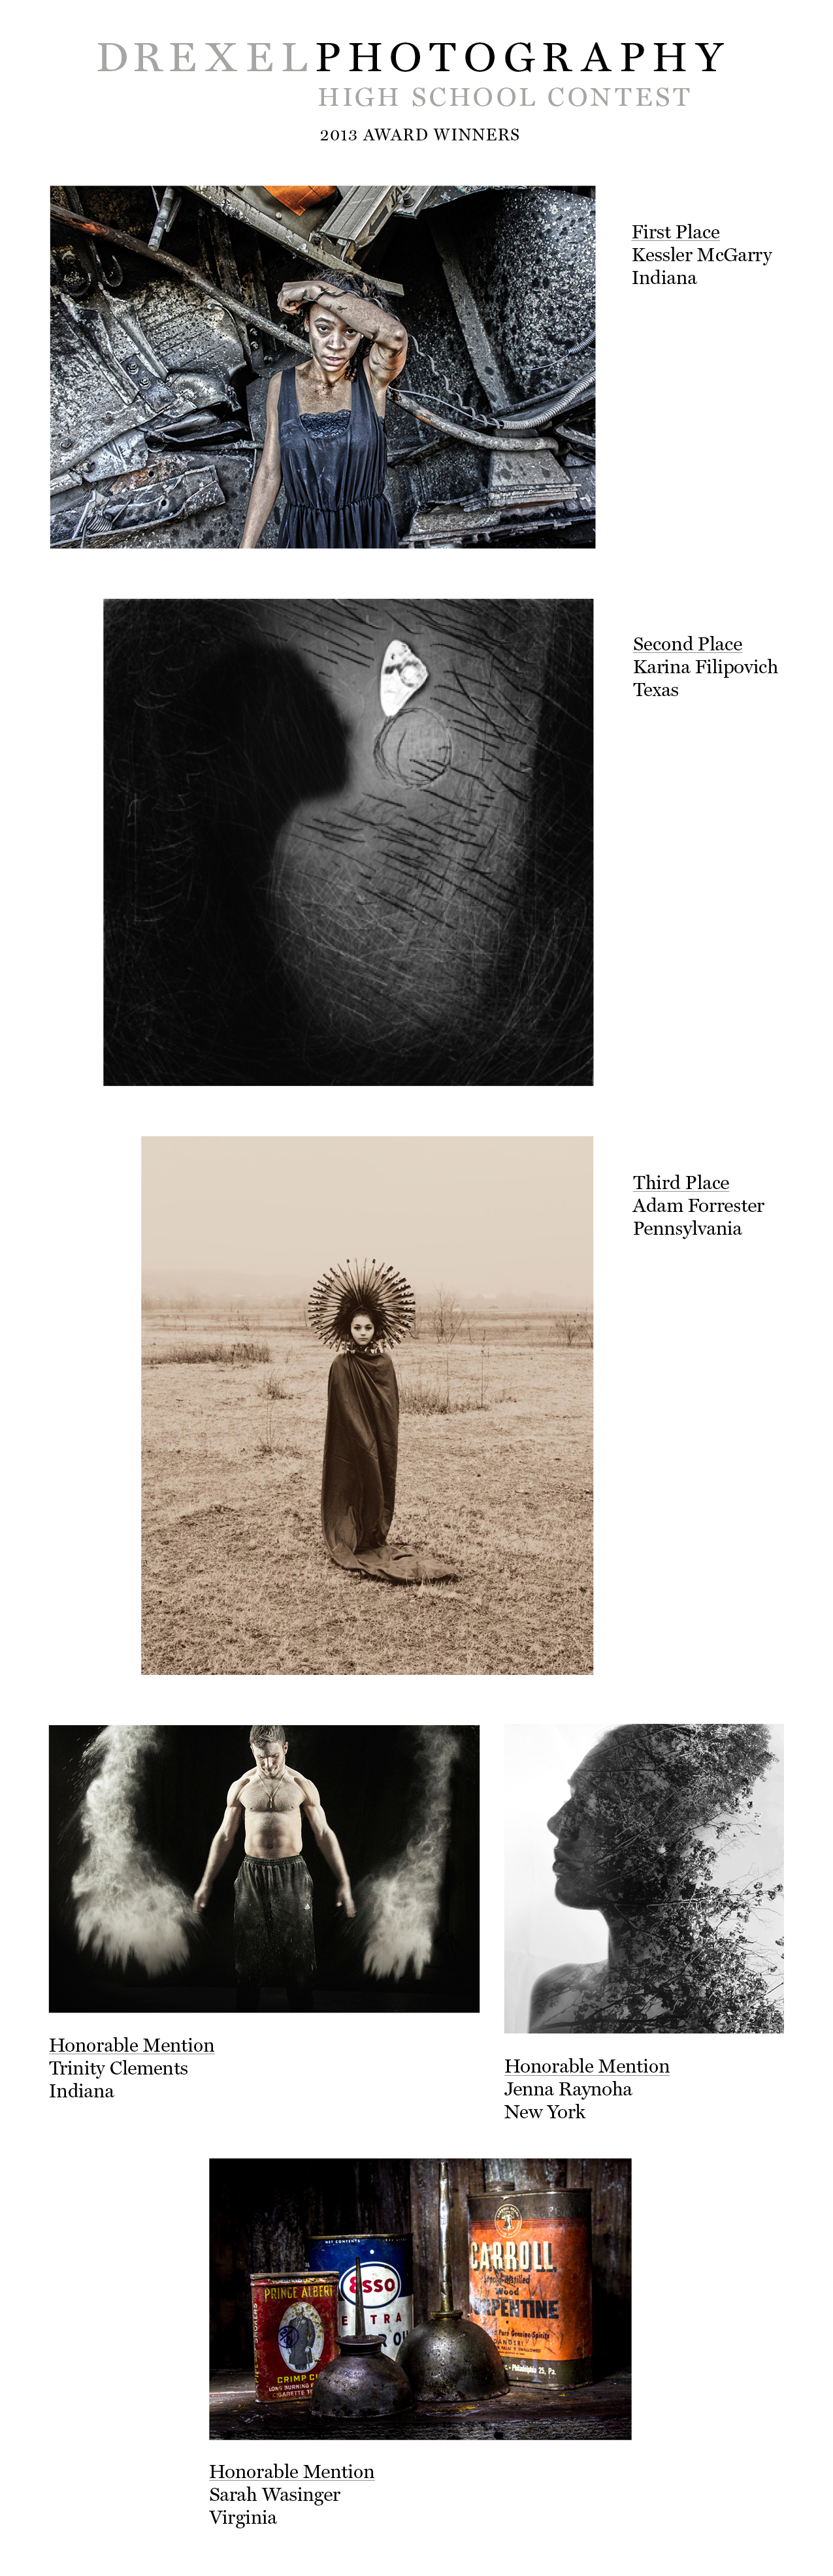 Drexel Photography High School Contest 2013 Award Winners